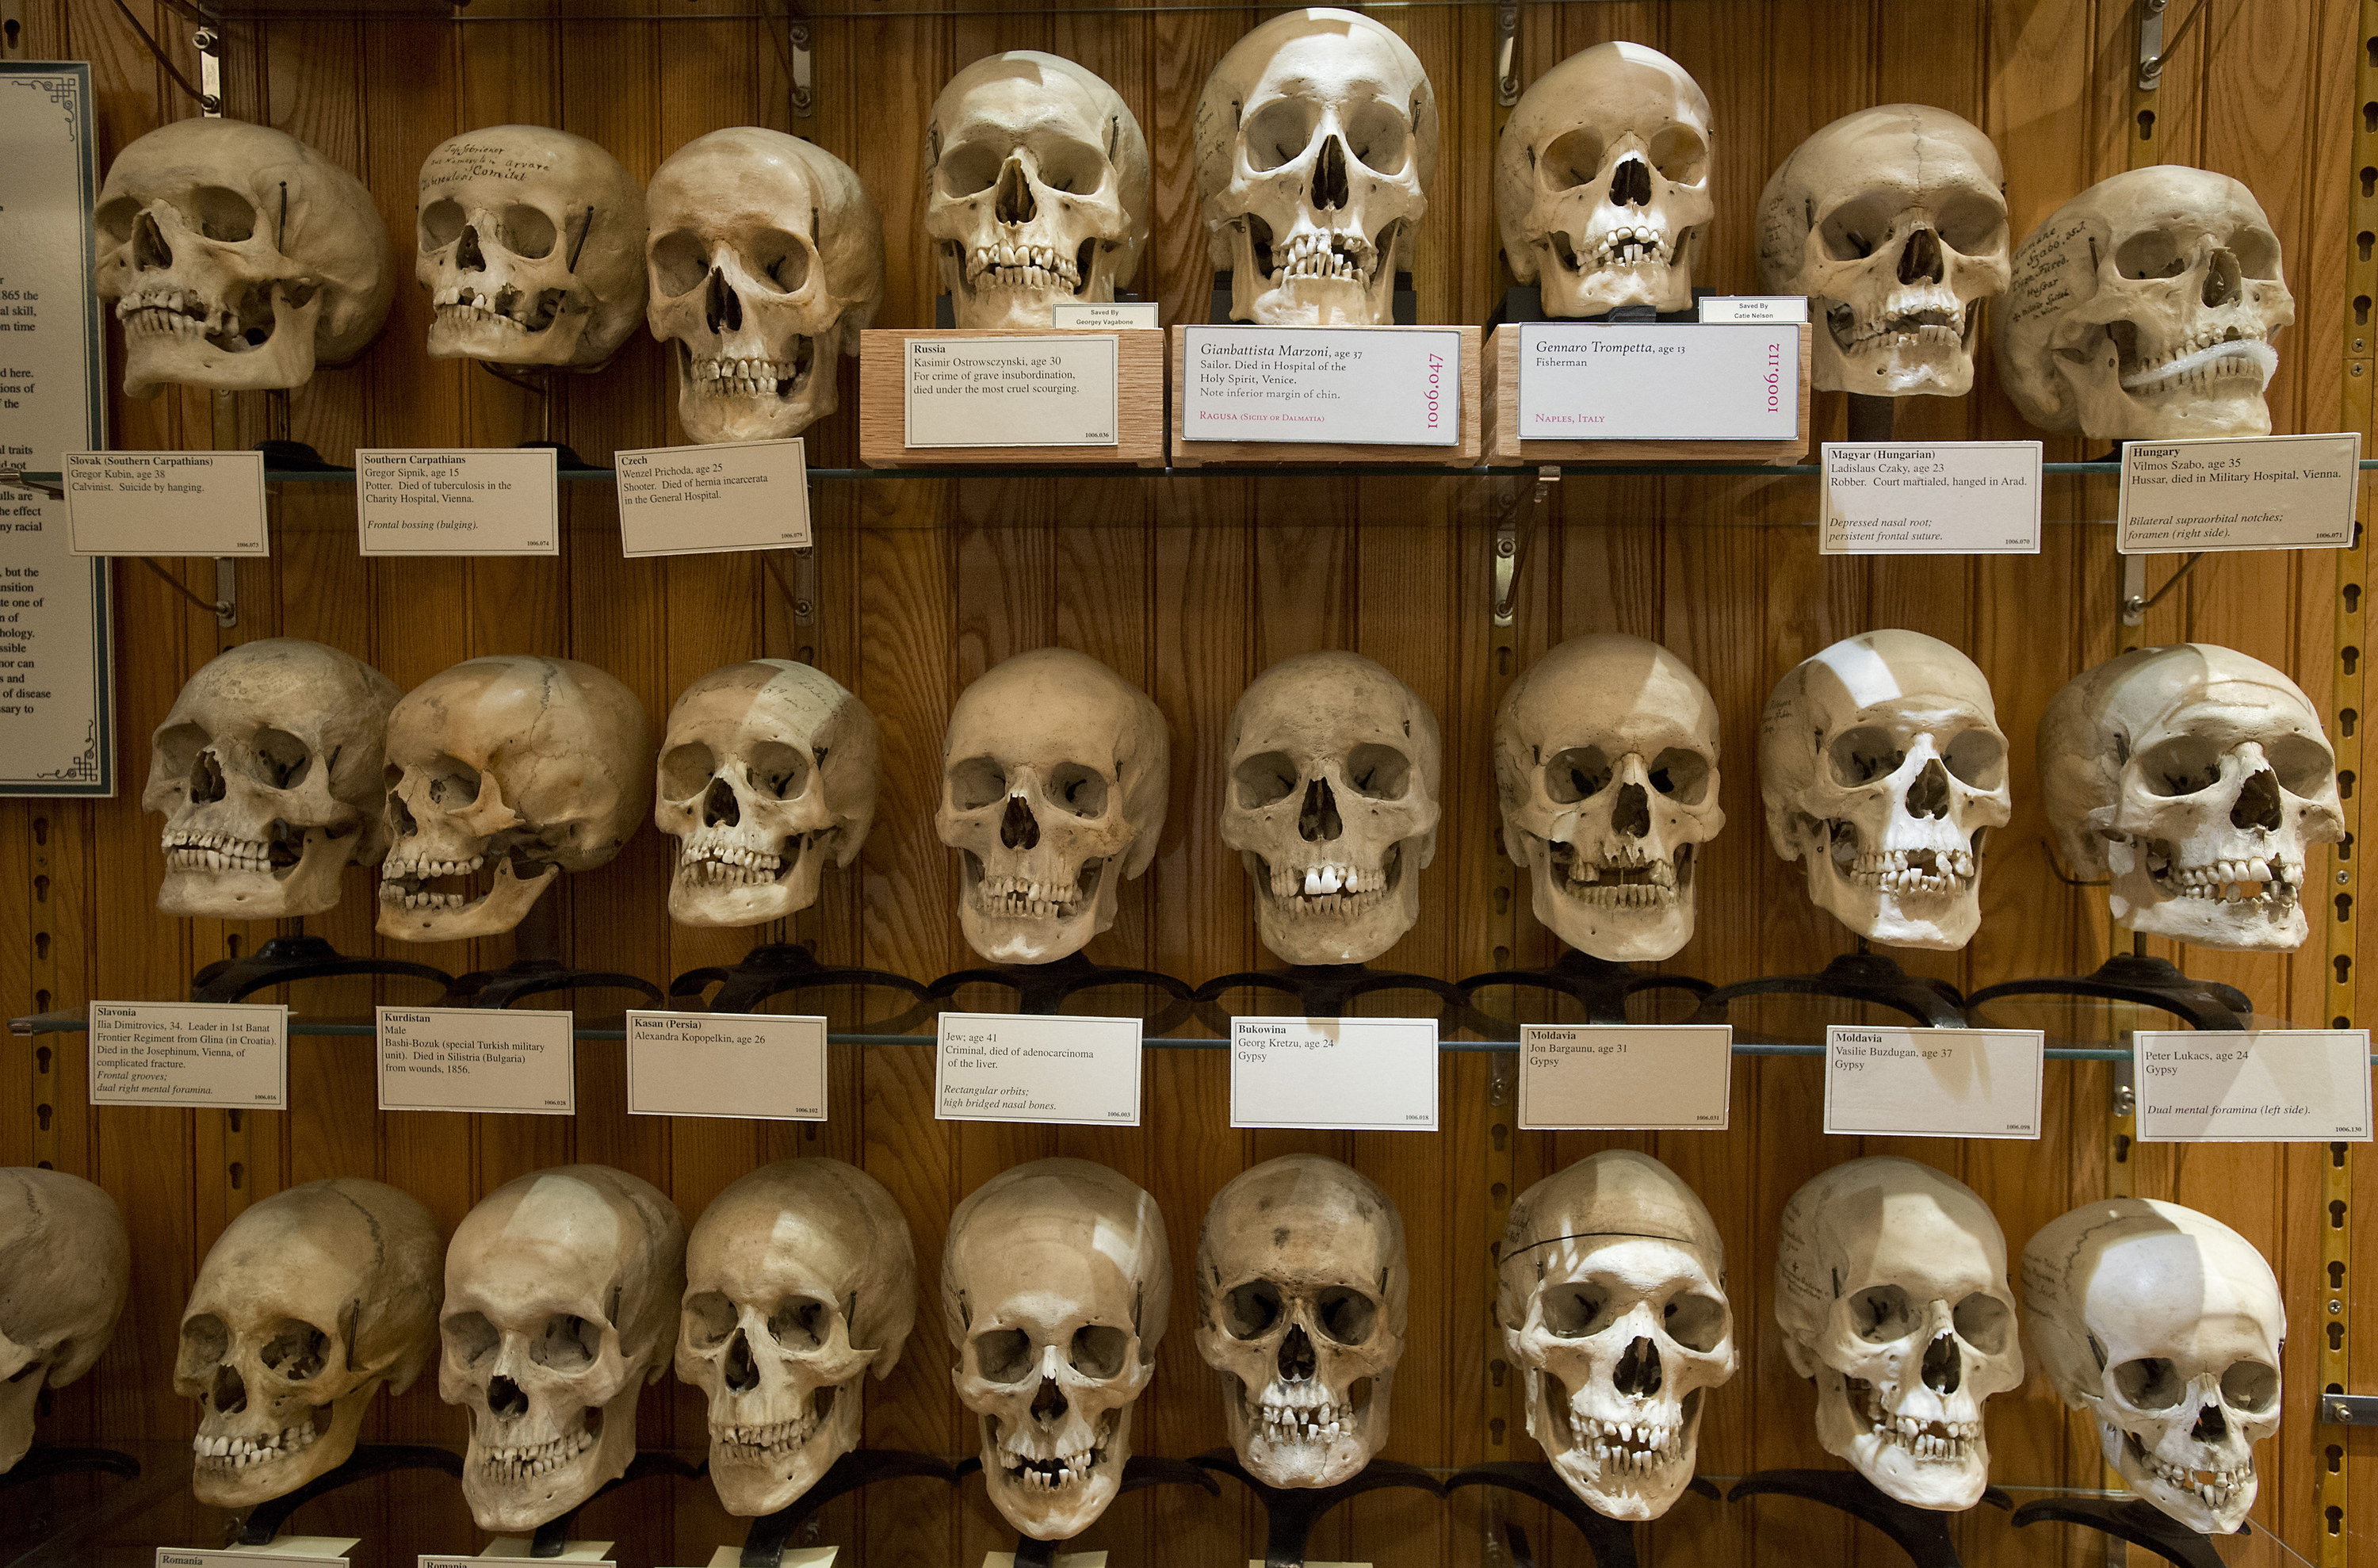 Shelves of skulls with placards